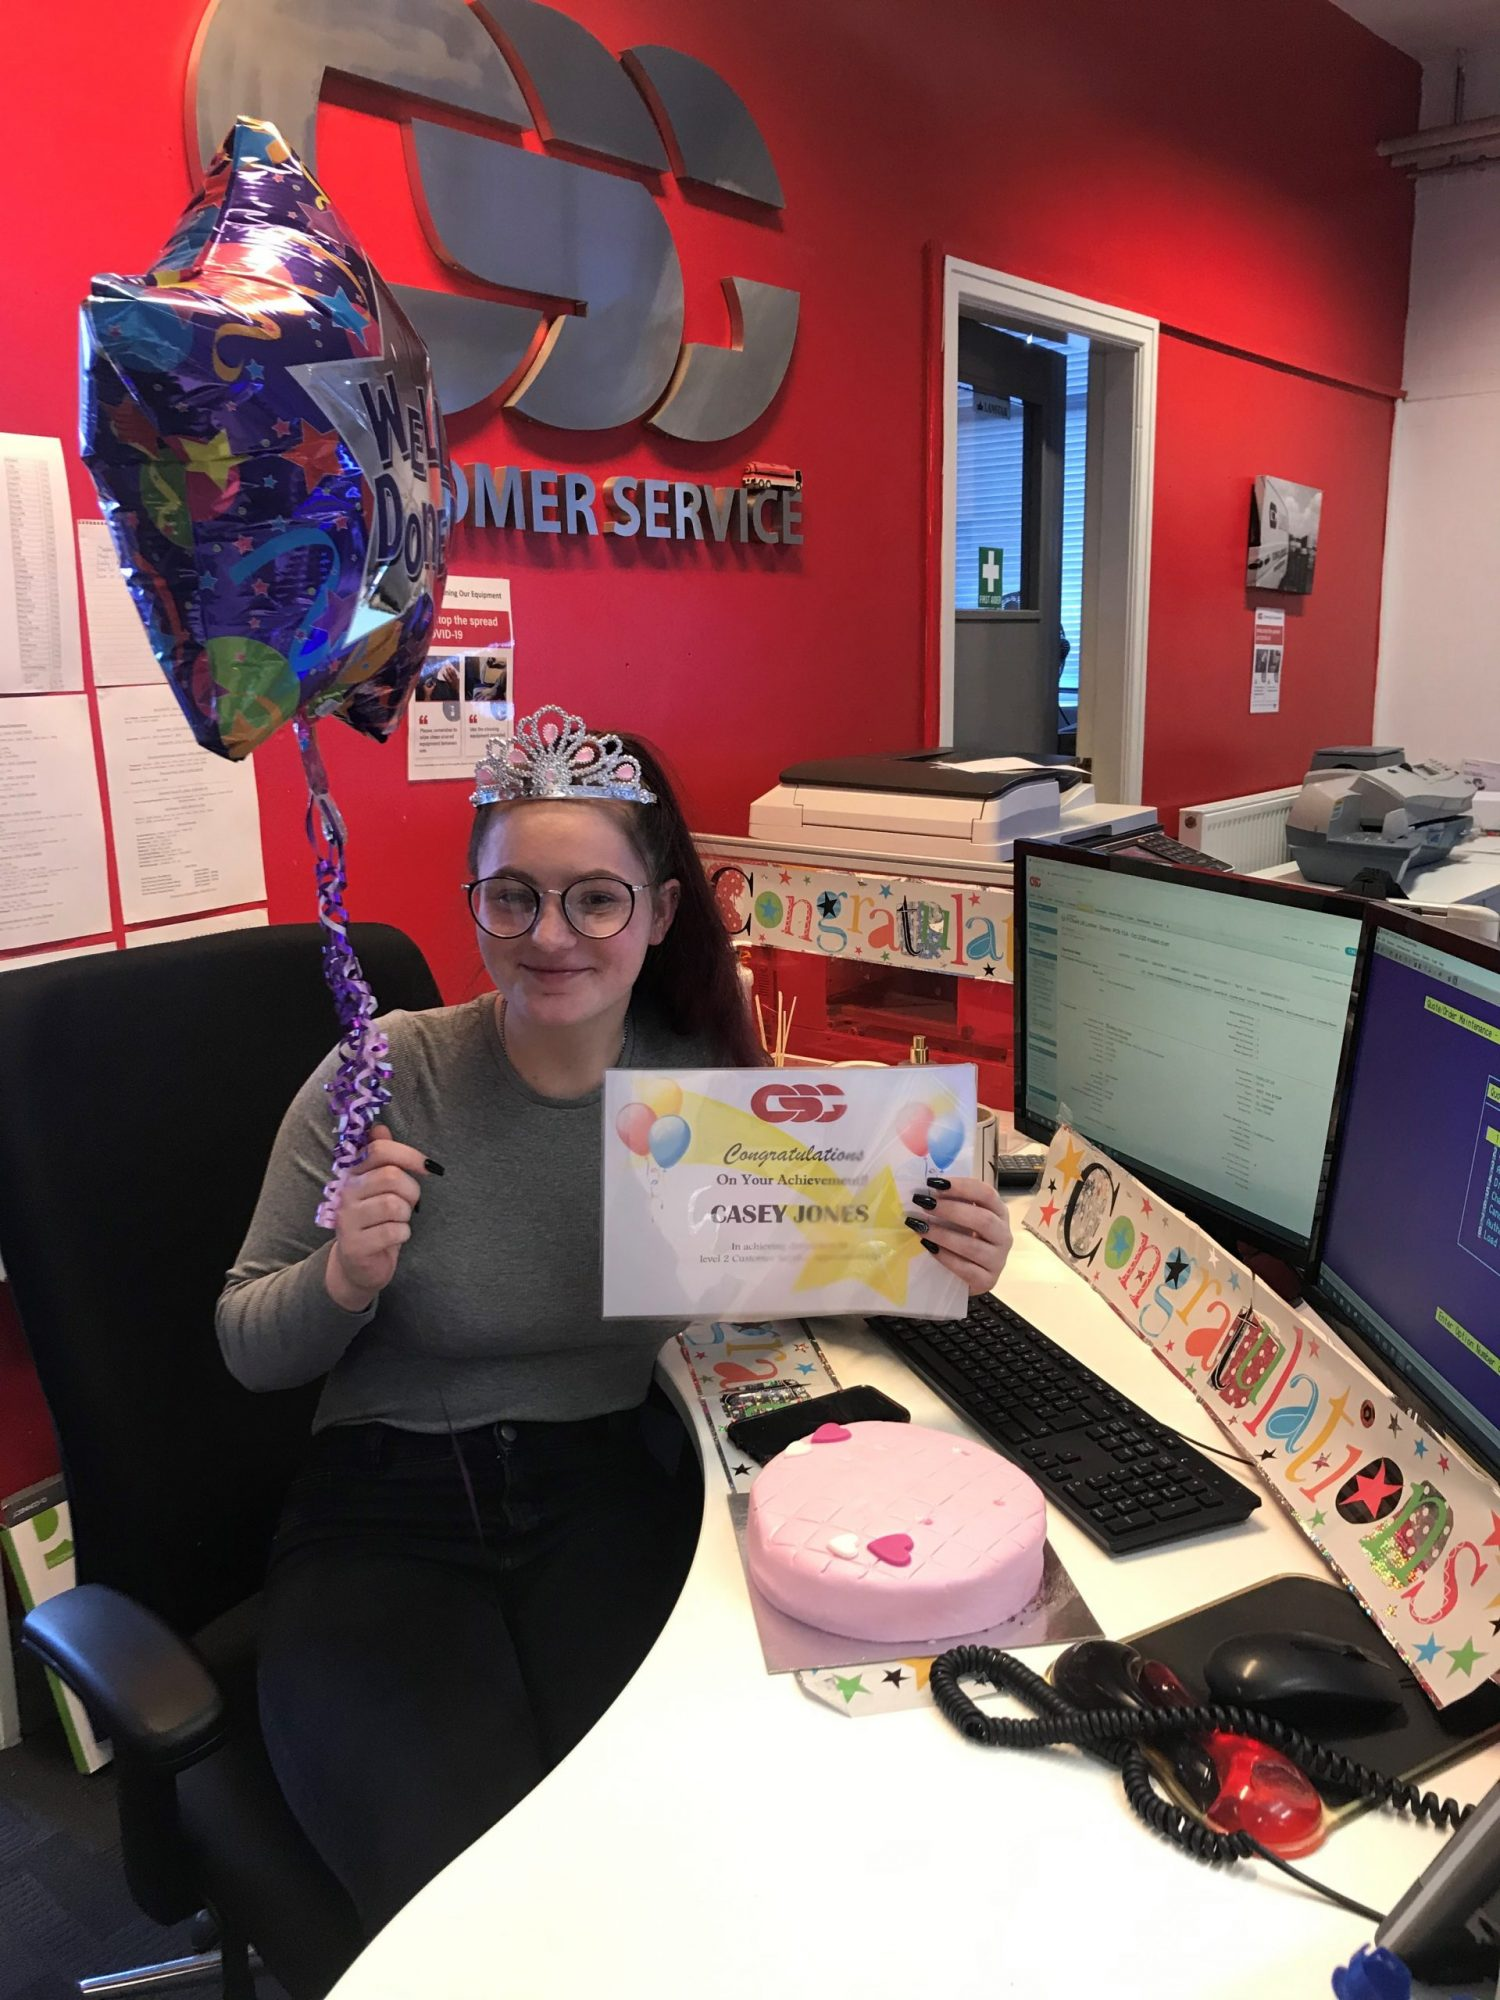 Casey Jones celebrating achieving Distinction on her Apprenticeship, with cake, balloons and a diploma